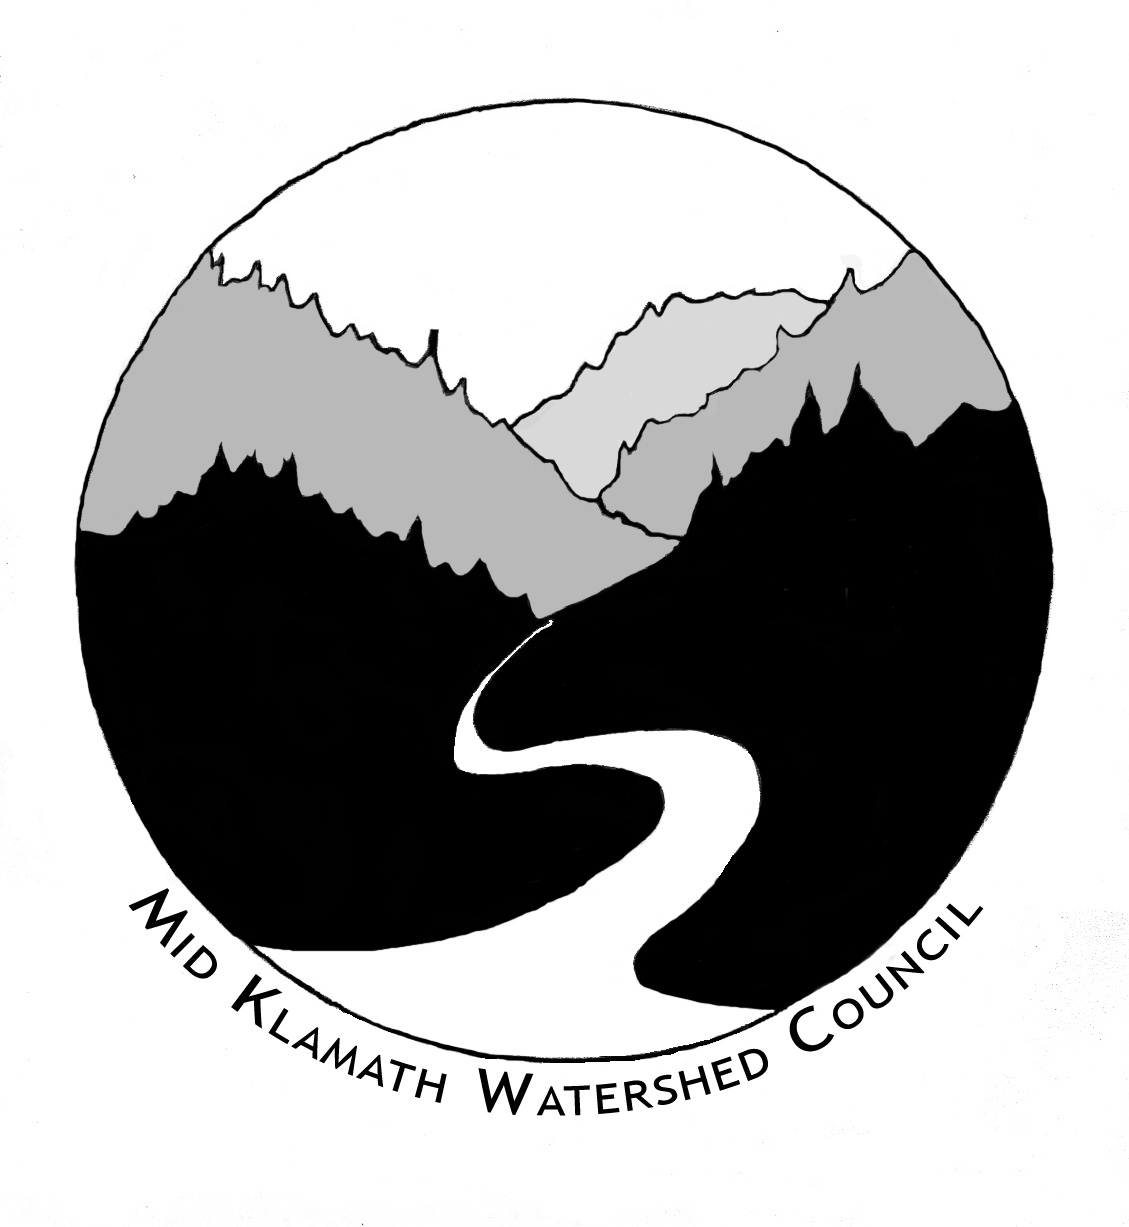 Mid Klamath Watershed Council logo - link to the MKWC website opens in new window